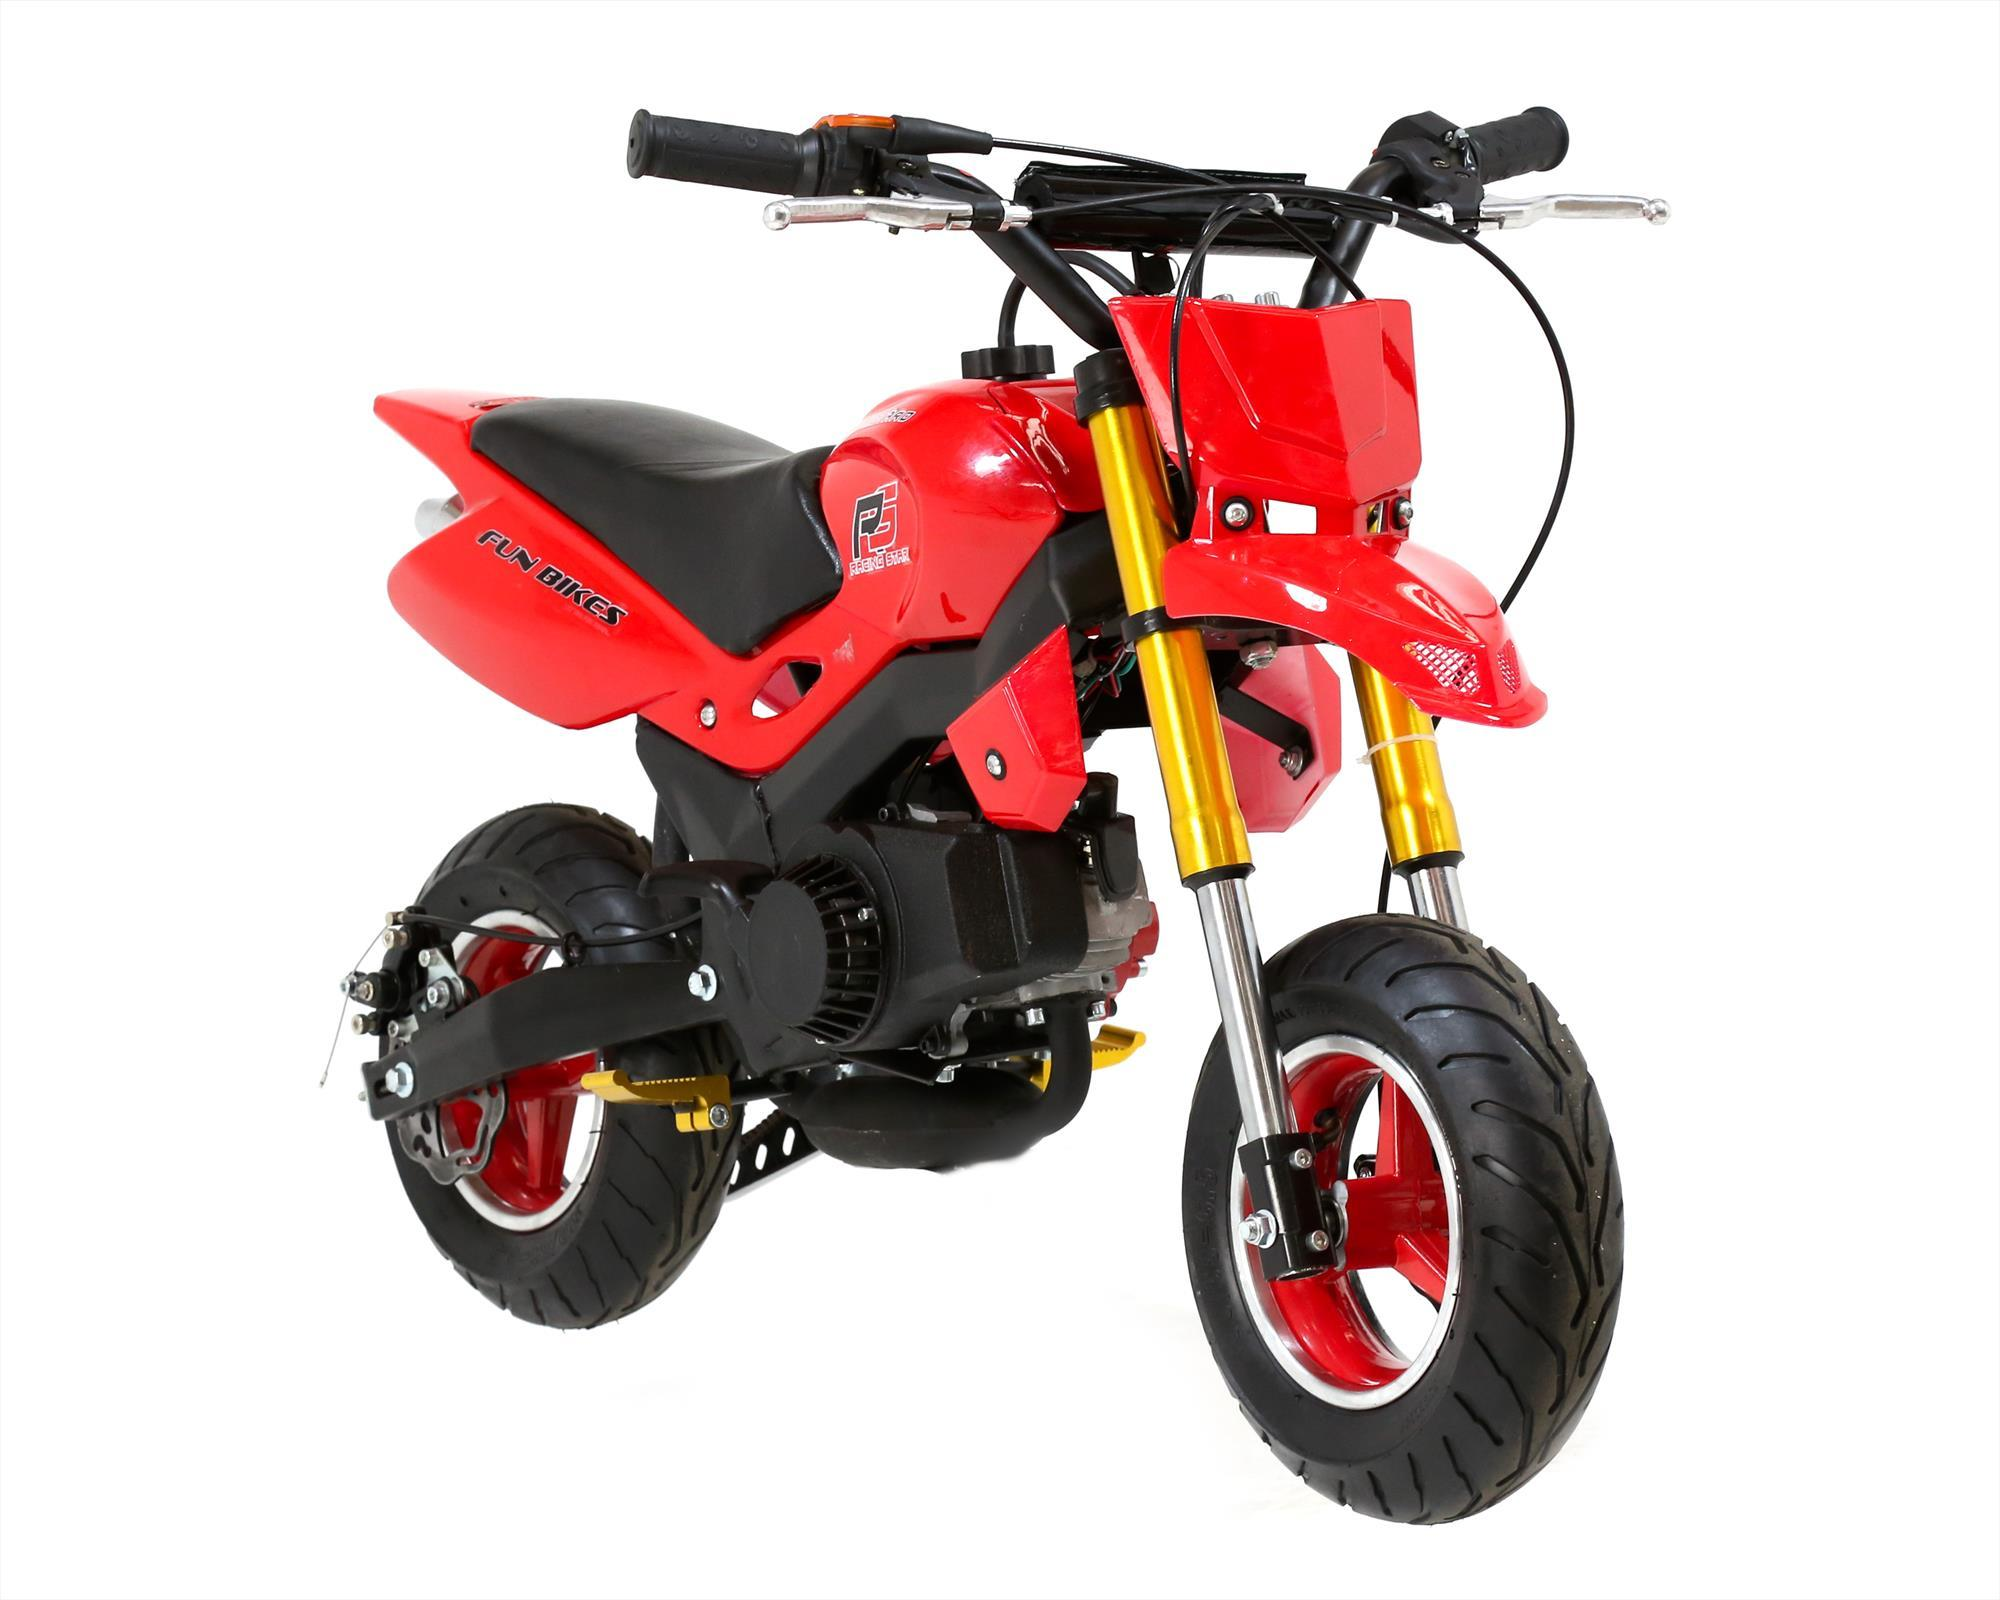 funbikes super motard 50cc 48cm red mini moto bike. Black Bedroom Furniture Sets. Home Design Ideas